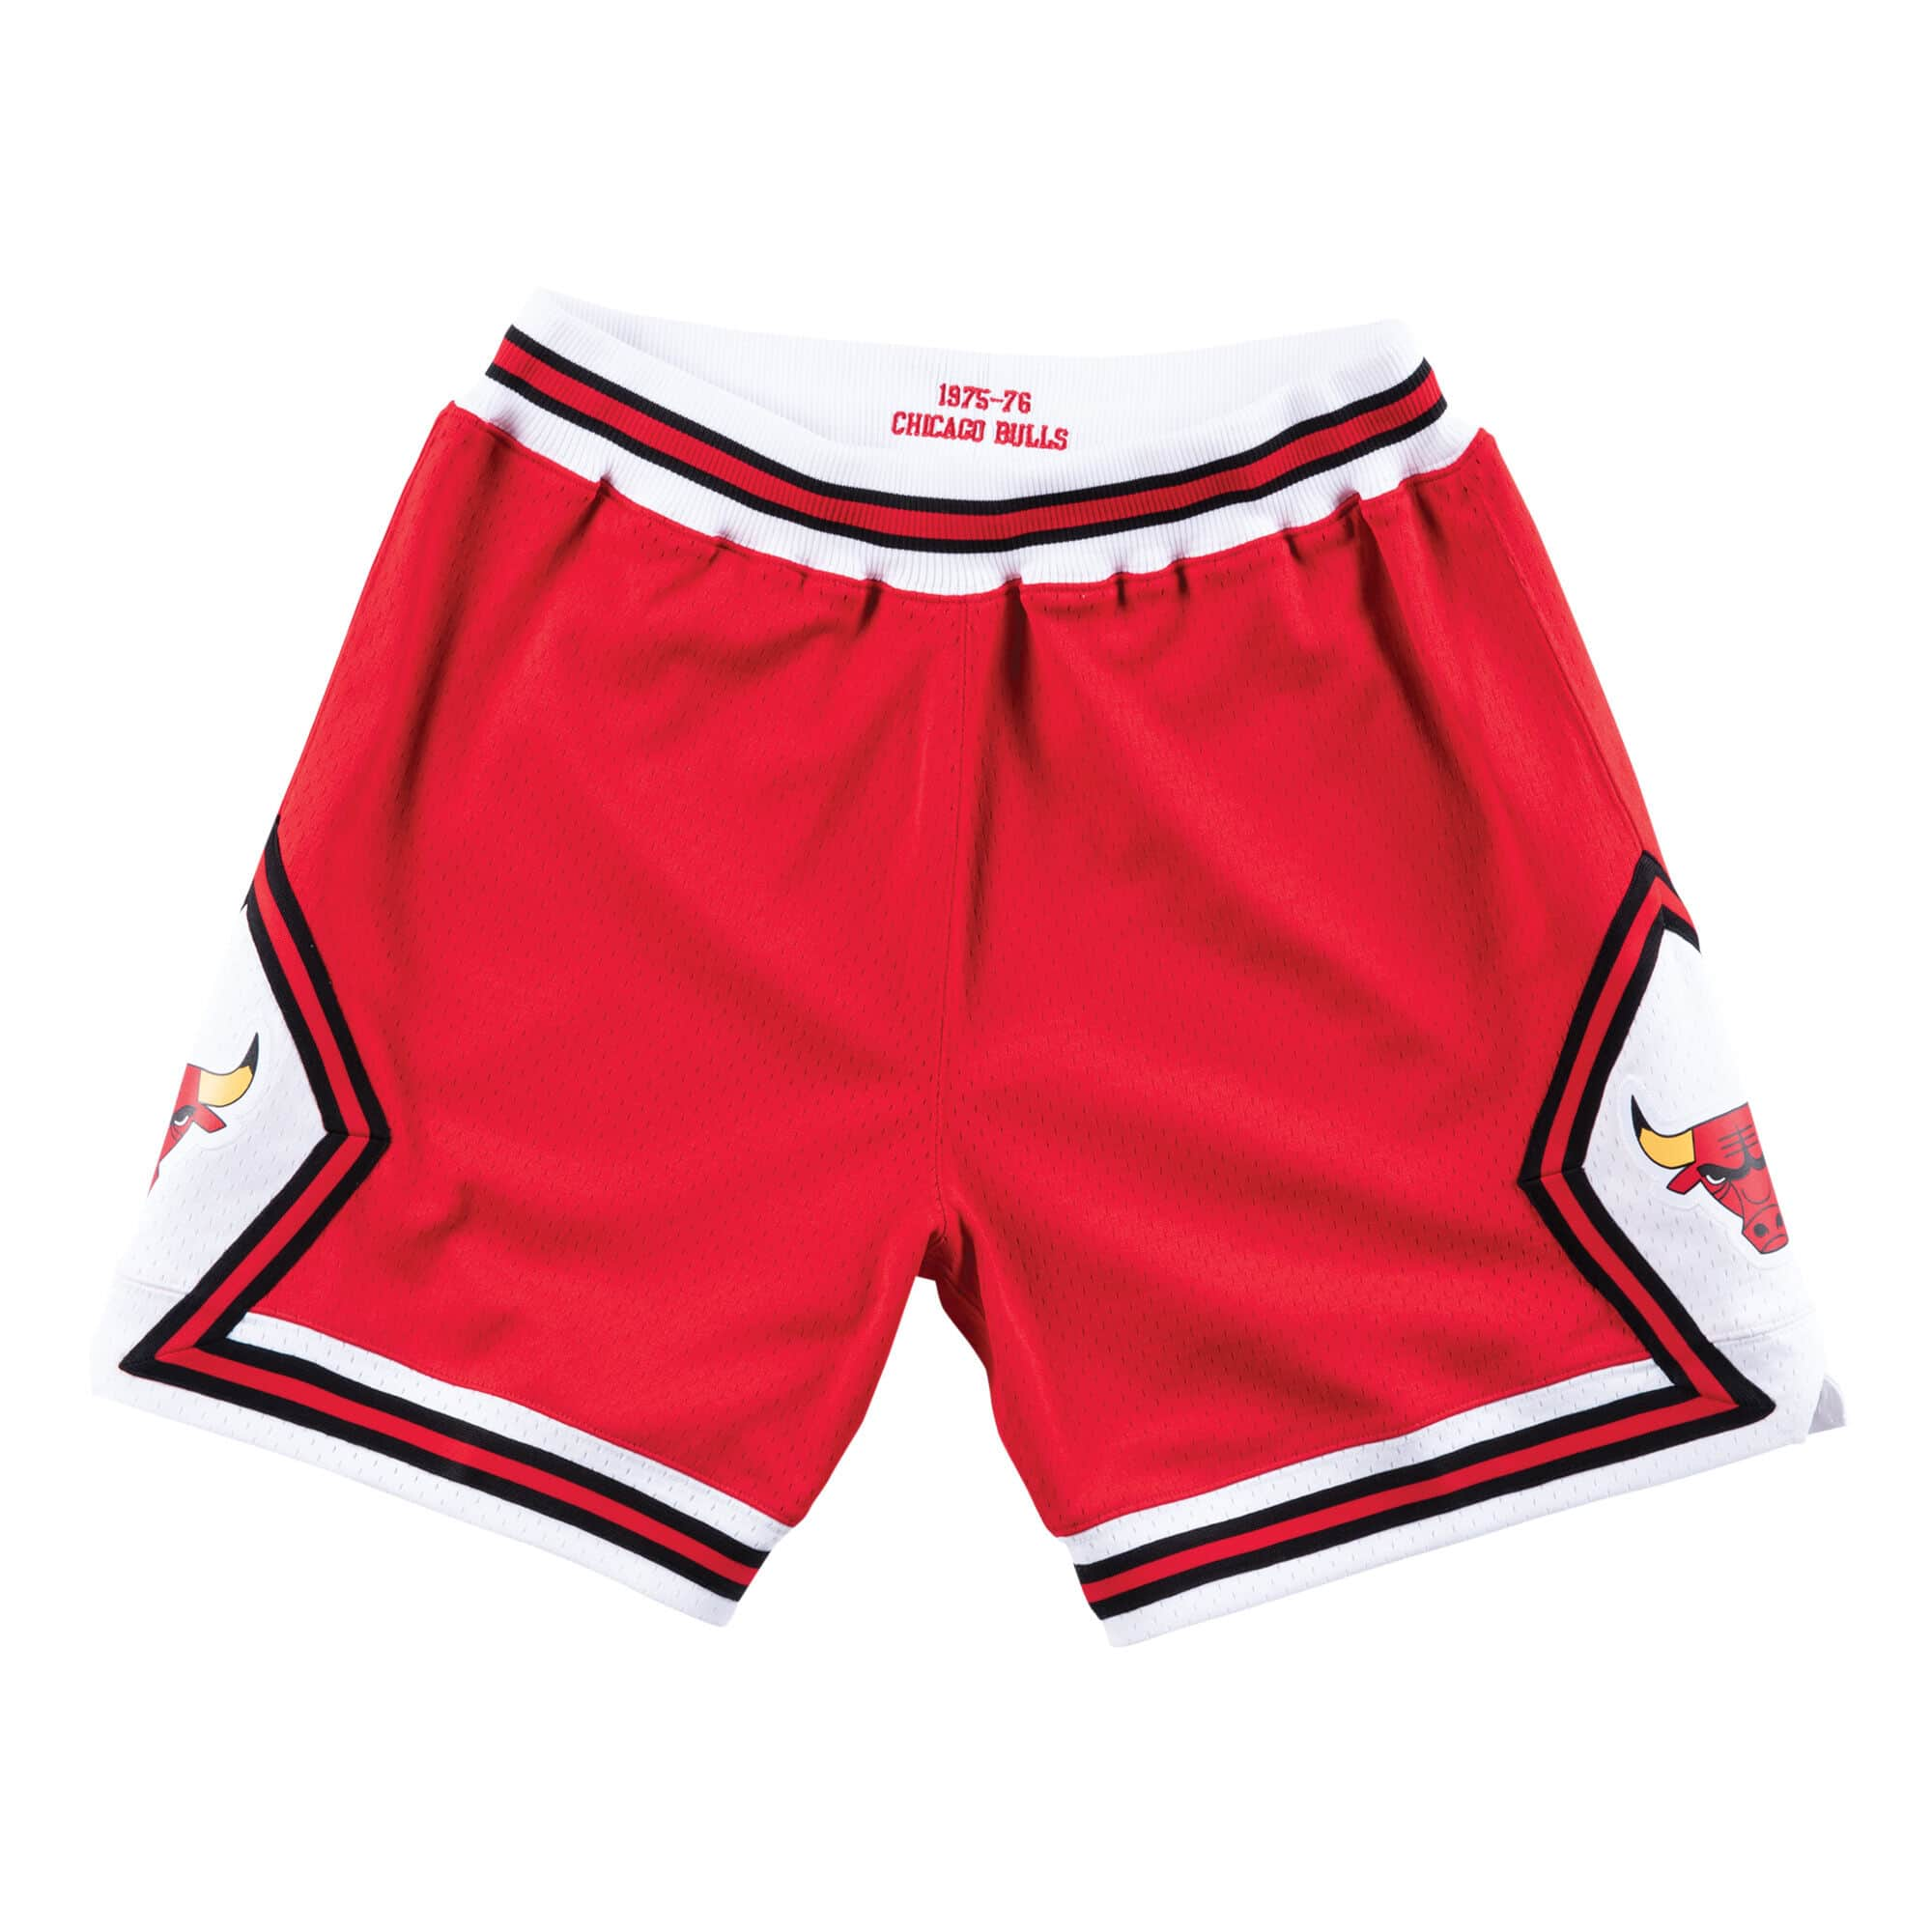 Authentic Shorts Chicago Bulls Road 1975-76